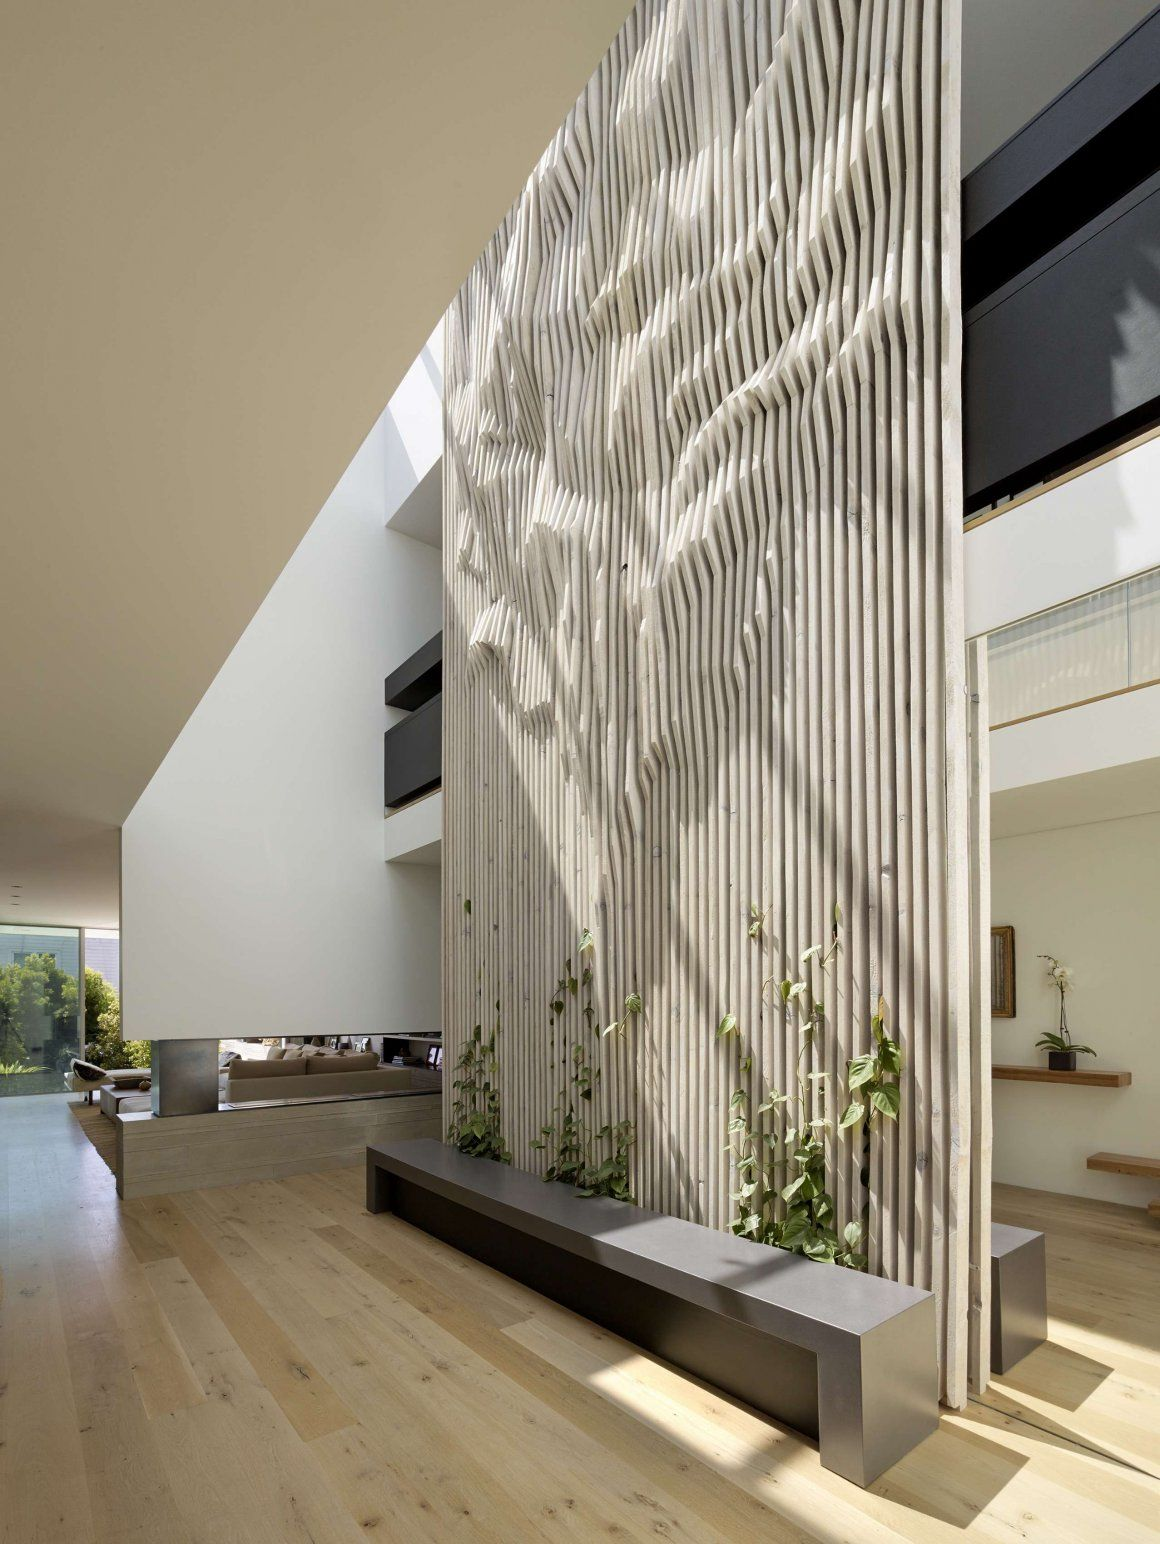 50 Amazing Partition Wall Ideas Engineering Discoveries In 2020 Lobby Design Interior Architecture Interior Design